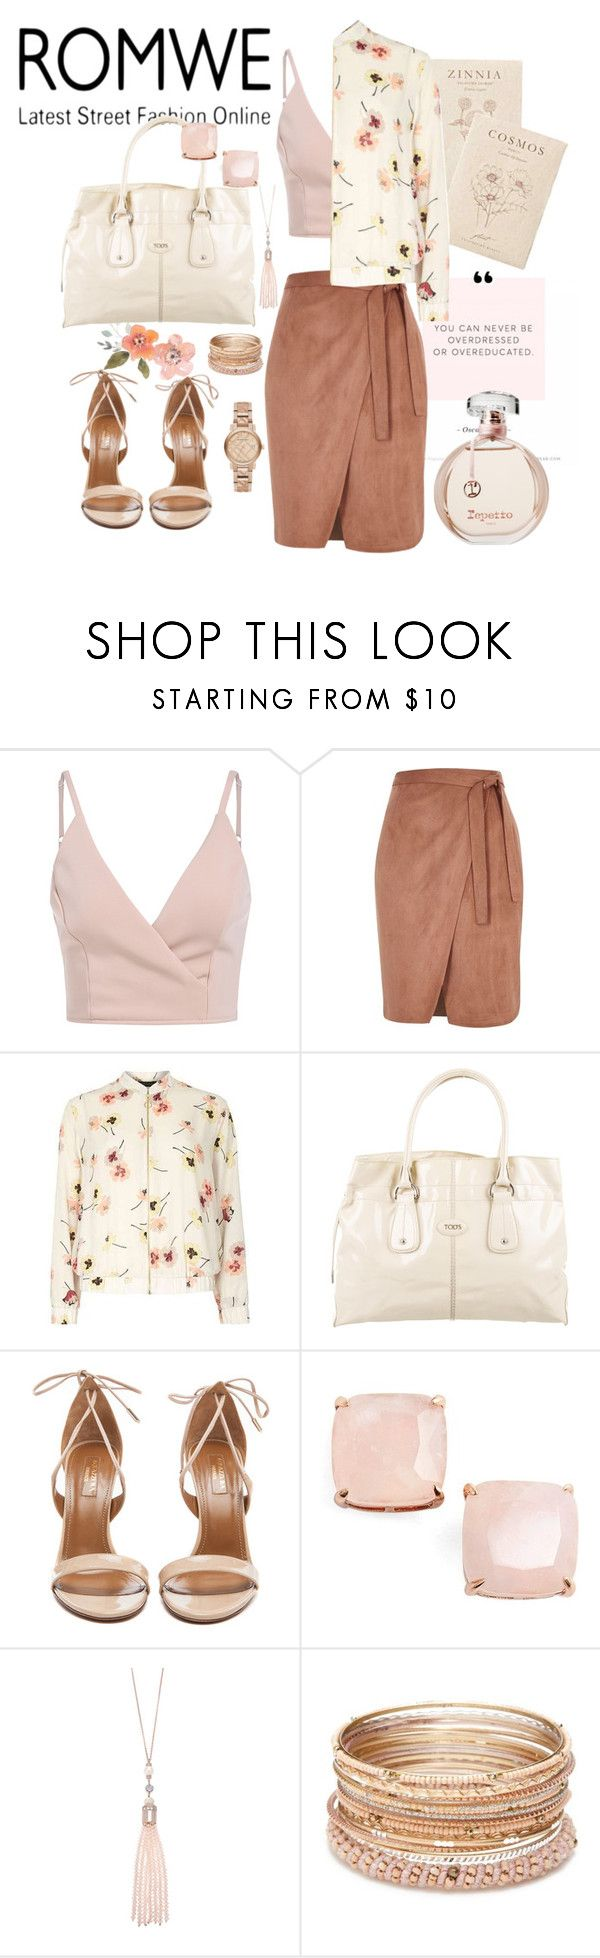 """""""Khaki-Slip-V-Neck-Cami-Top"""" by manueladimauro ❤ liked on Polyvore featuring River Island, Tod's, Aquazzura, Kate Spade, Oasis, Red Camel and Burberry"""